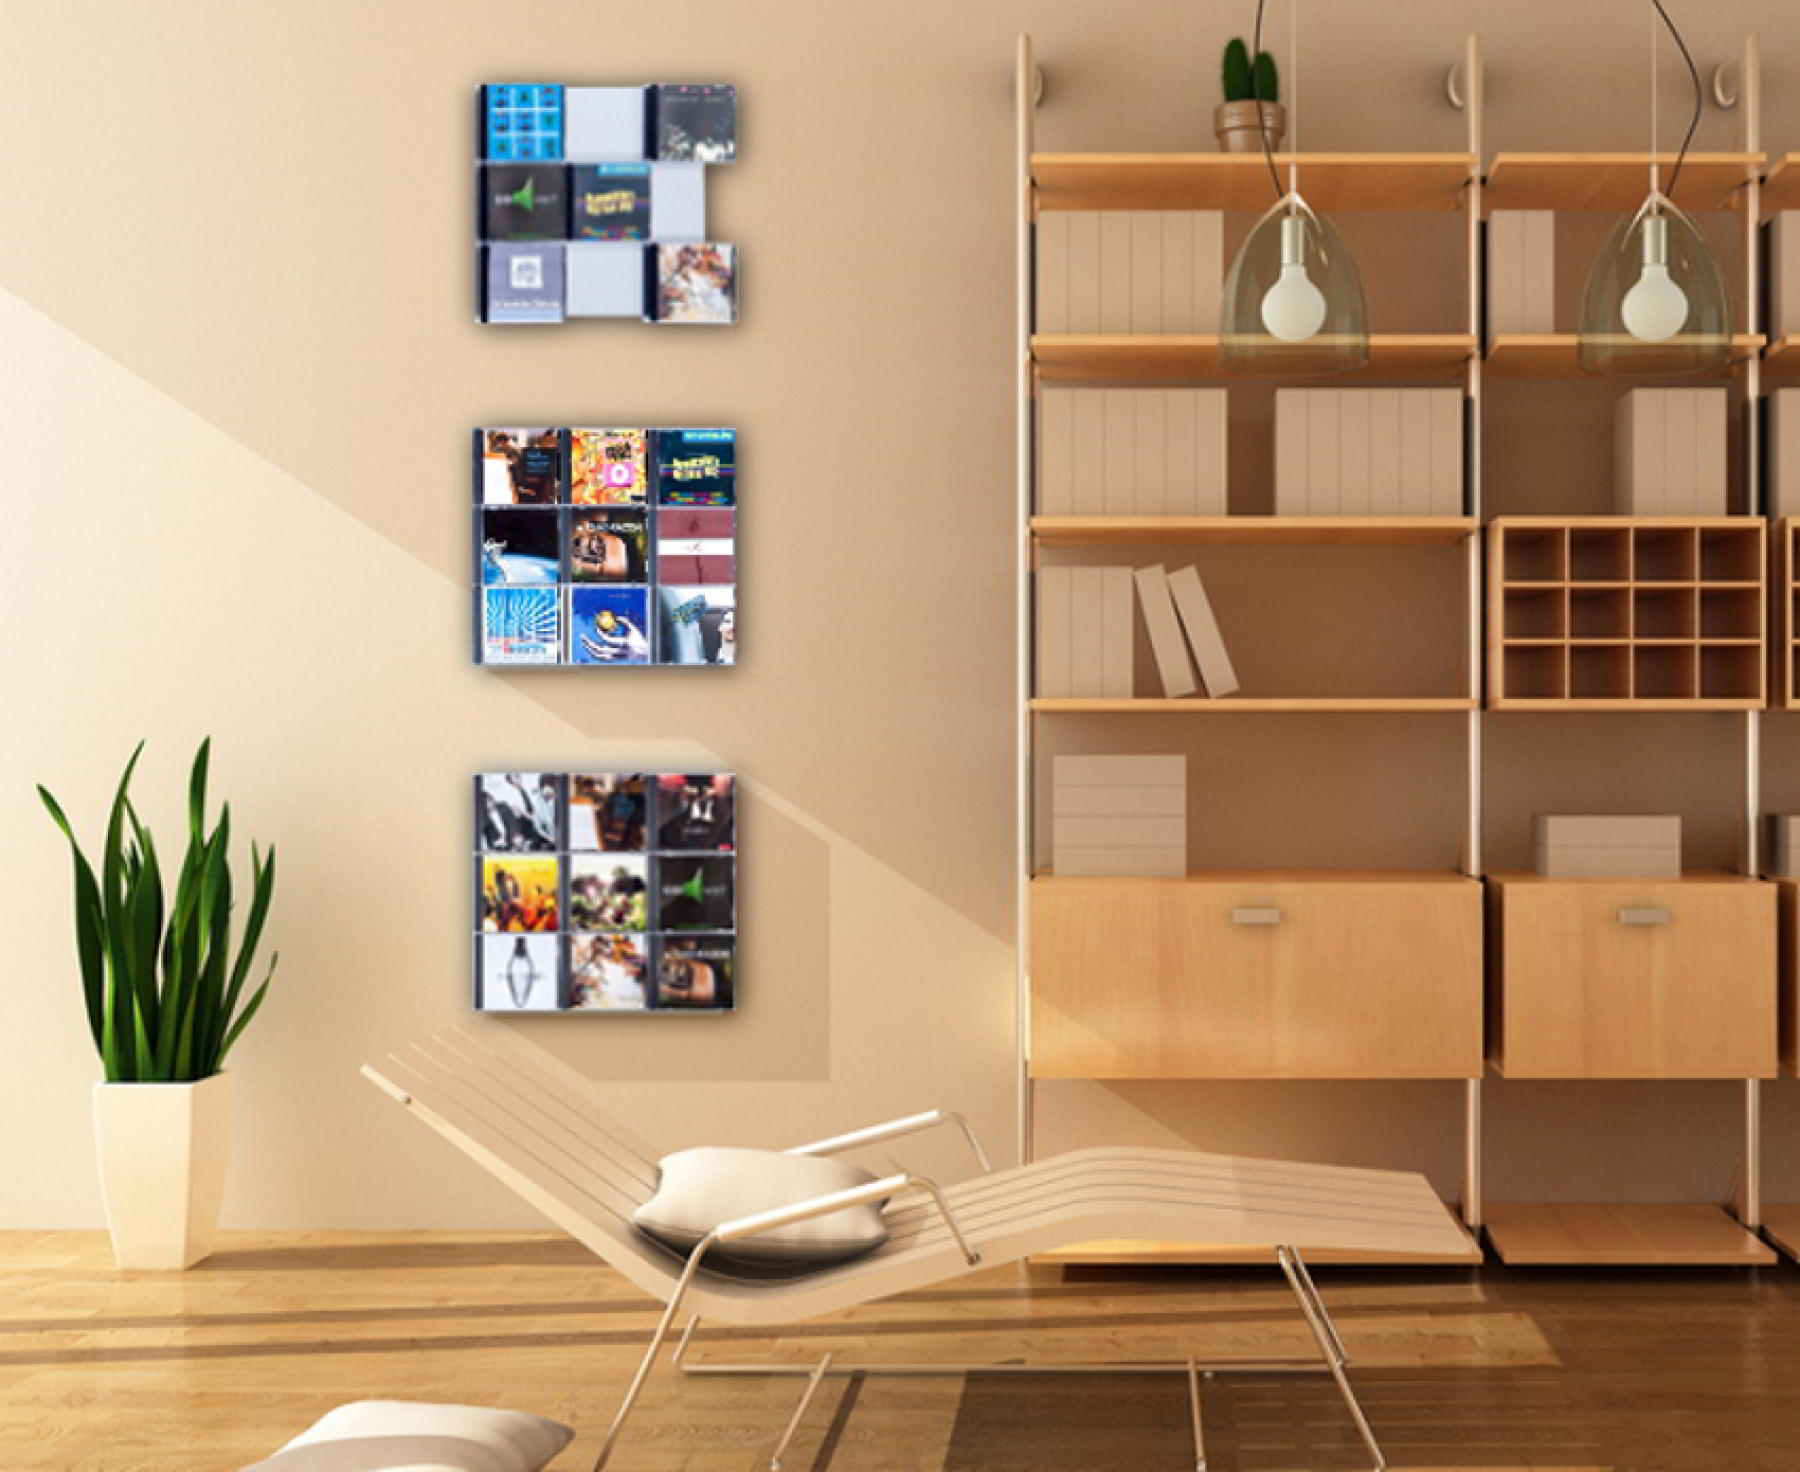 The picture shows three of our CD CD Wall3x3 wall shelves above the flat